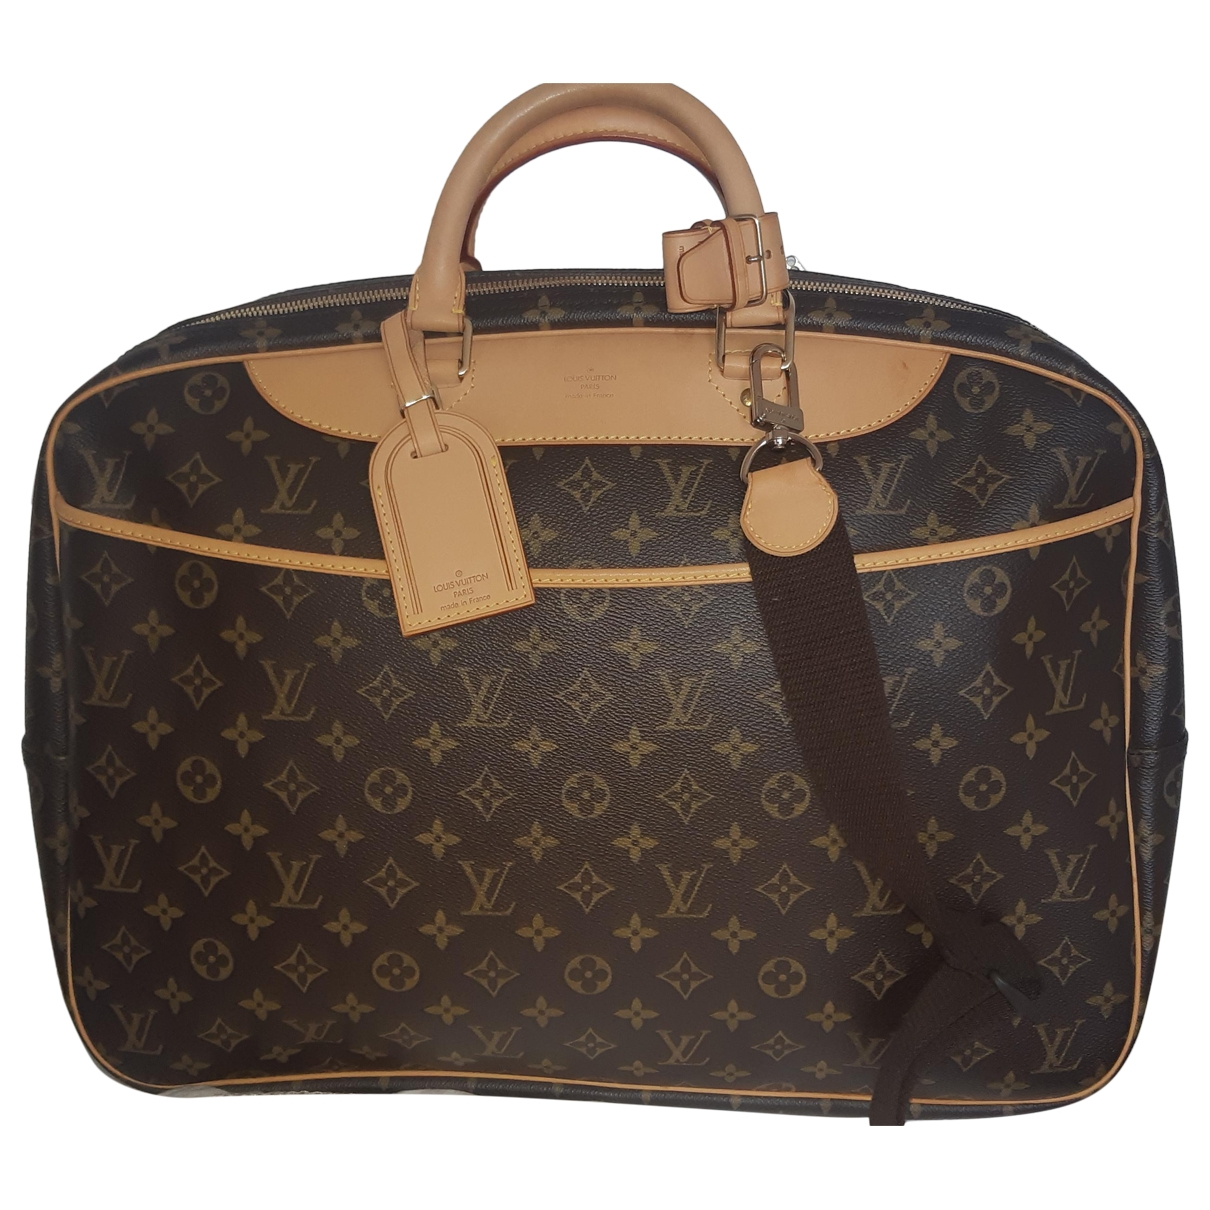 Louis Vuitton Deauville Brown Leather Travel bag for Women \N